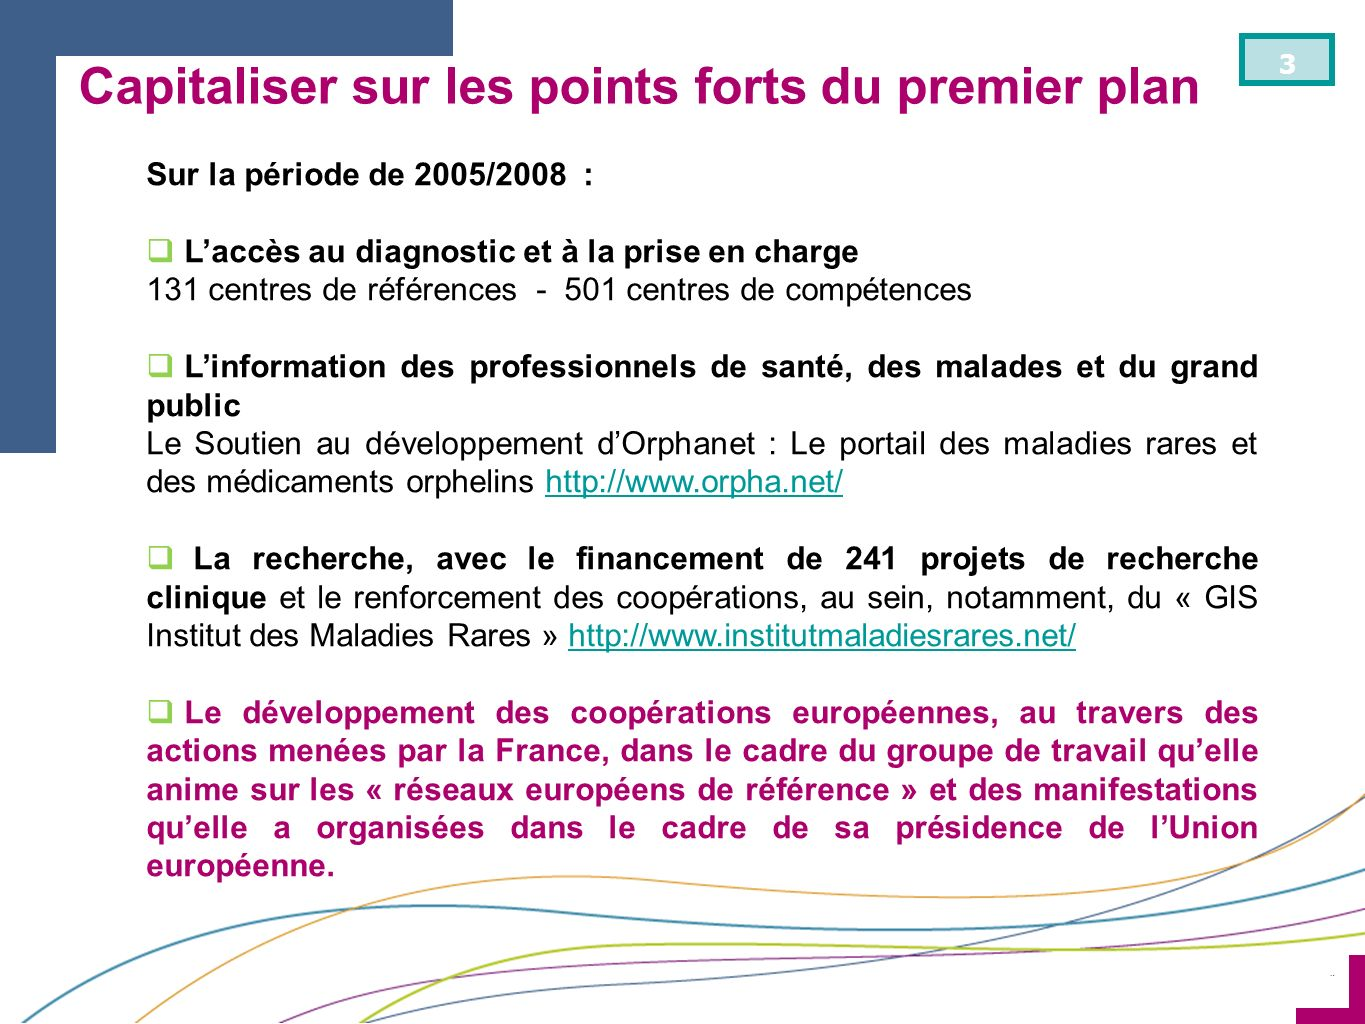 Capitaliser sur les points forts du premier plan